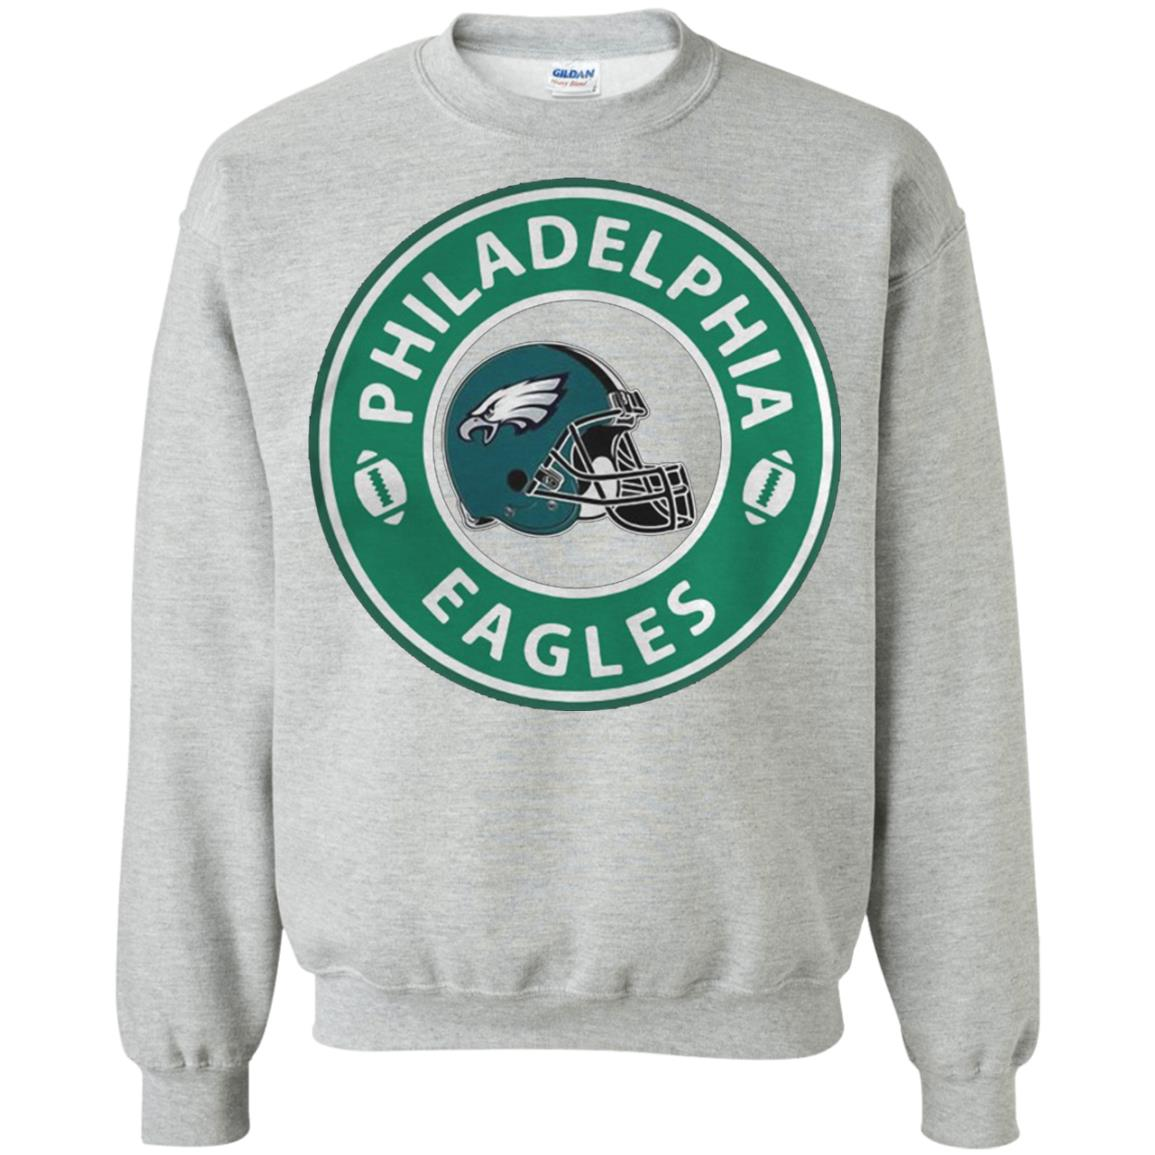 Starbucks Coffee Philadelphia Eagles Sweatshirt Amazon Best Seller` 32c2e58af